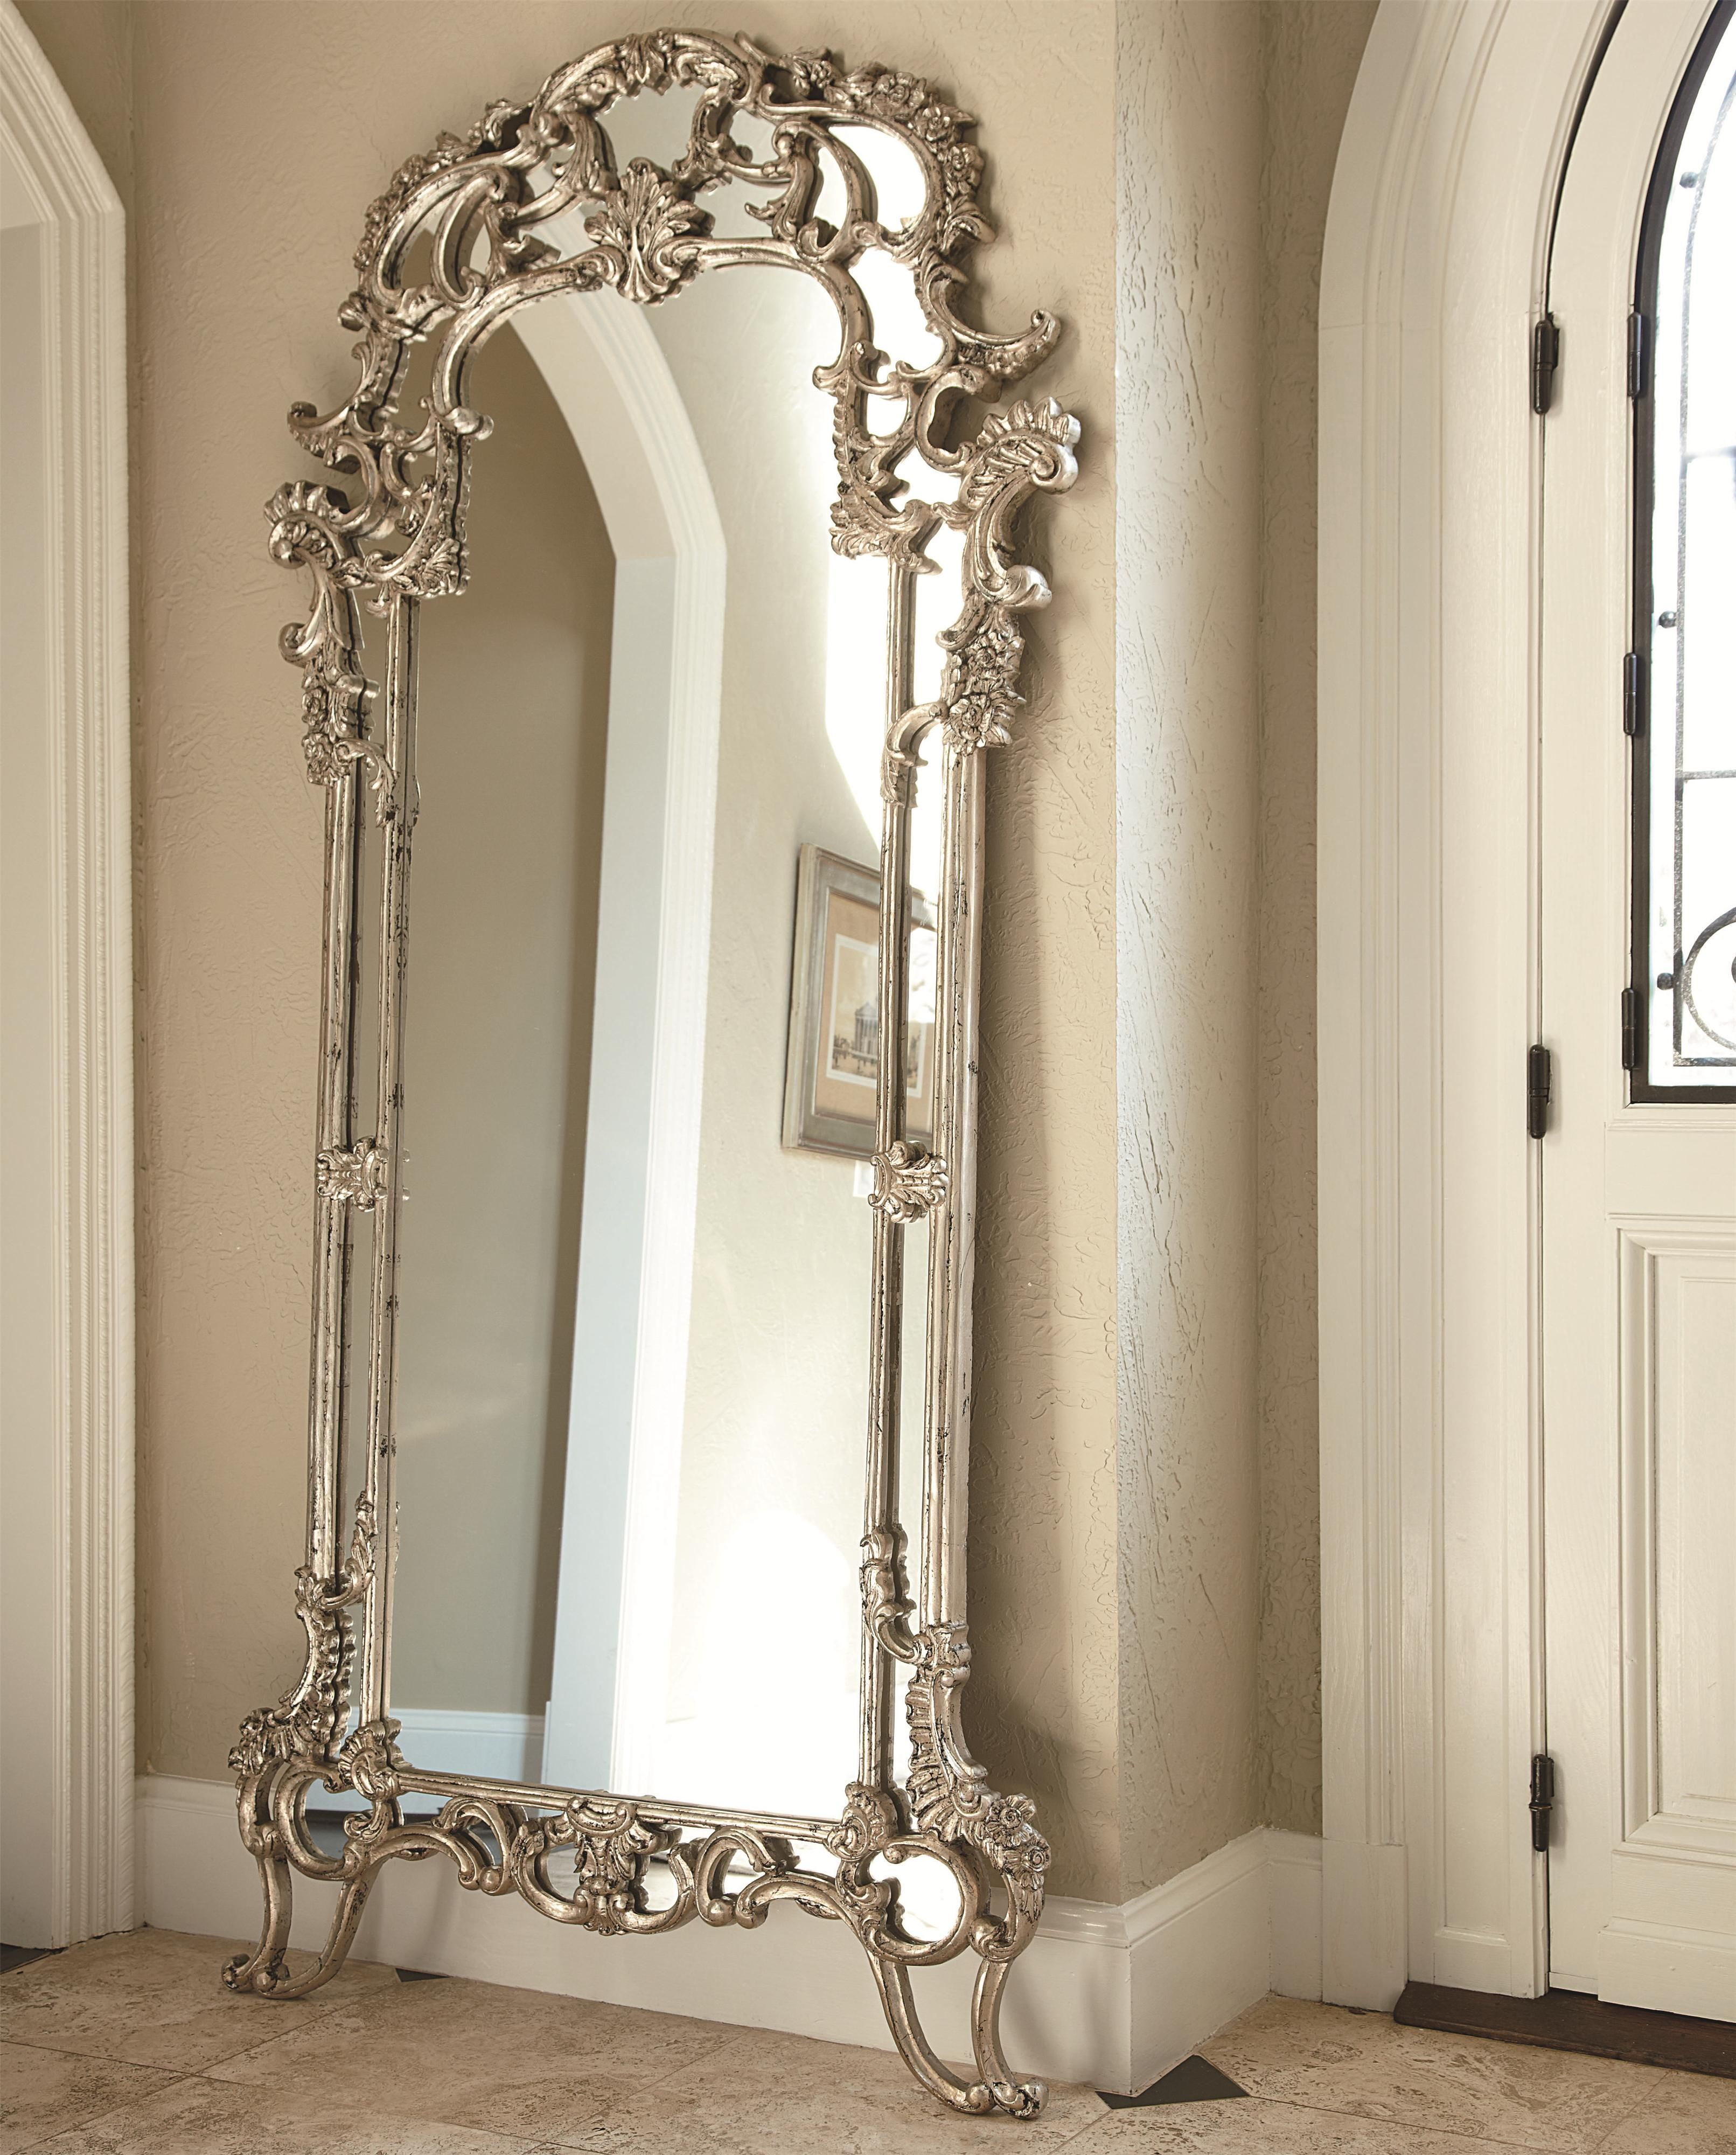 Decorative Floor Mirror - too elaborate for any of my decor choices ...